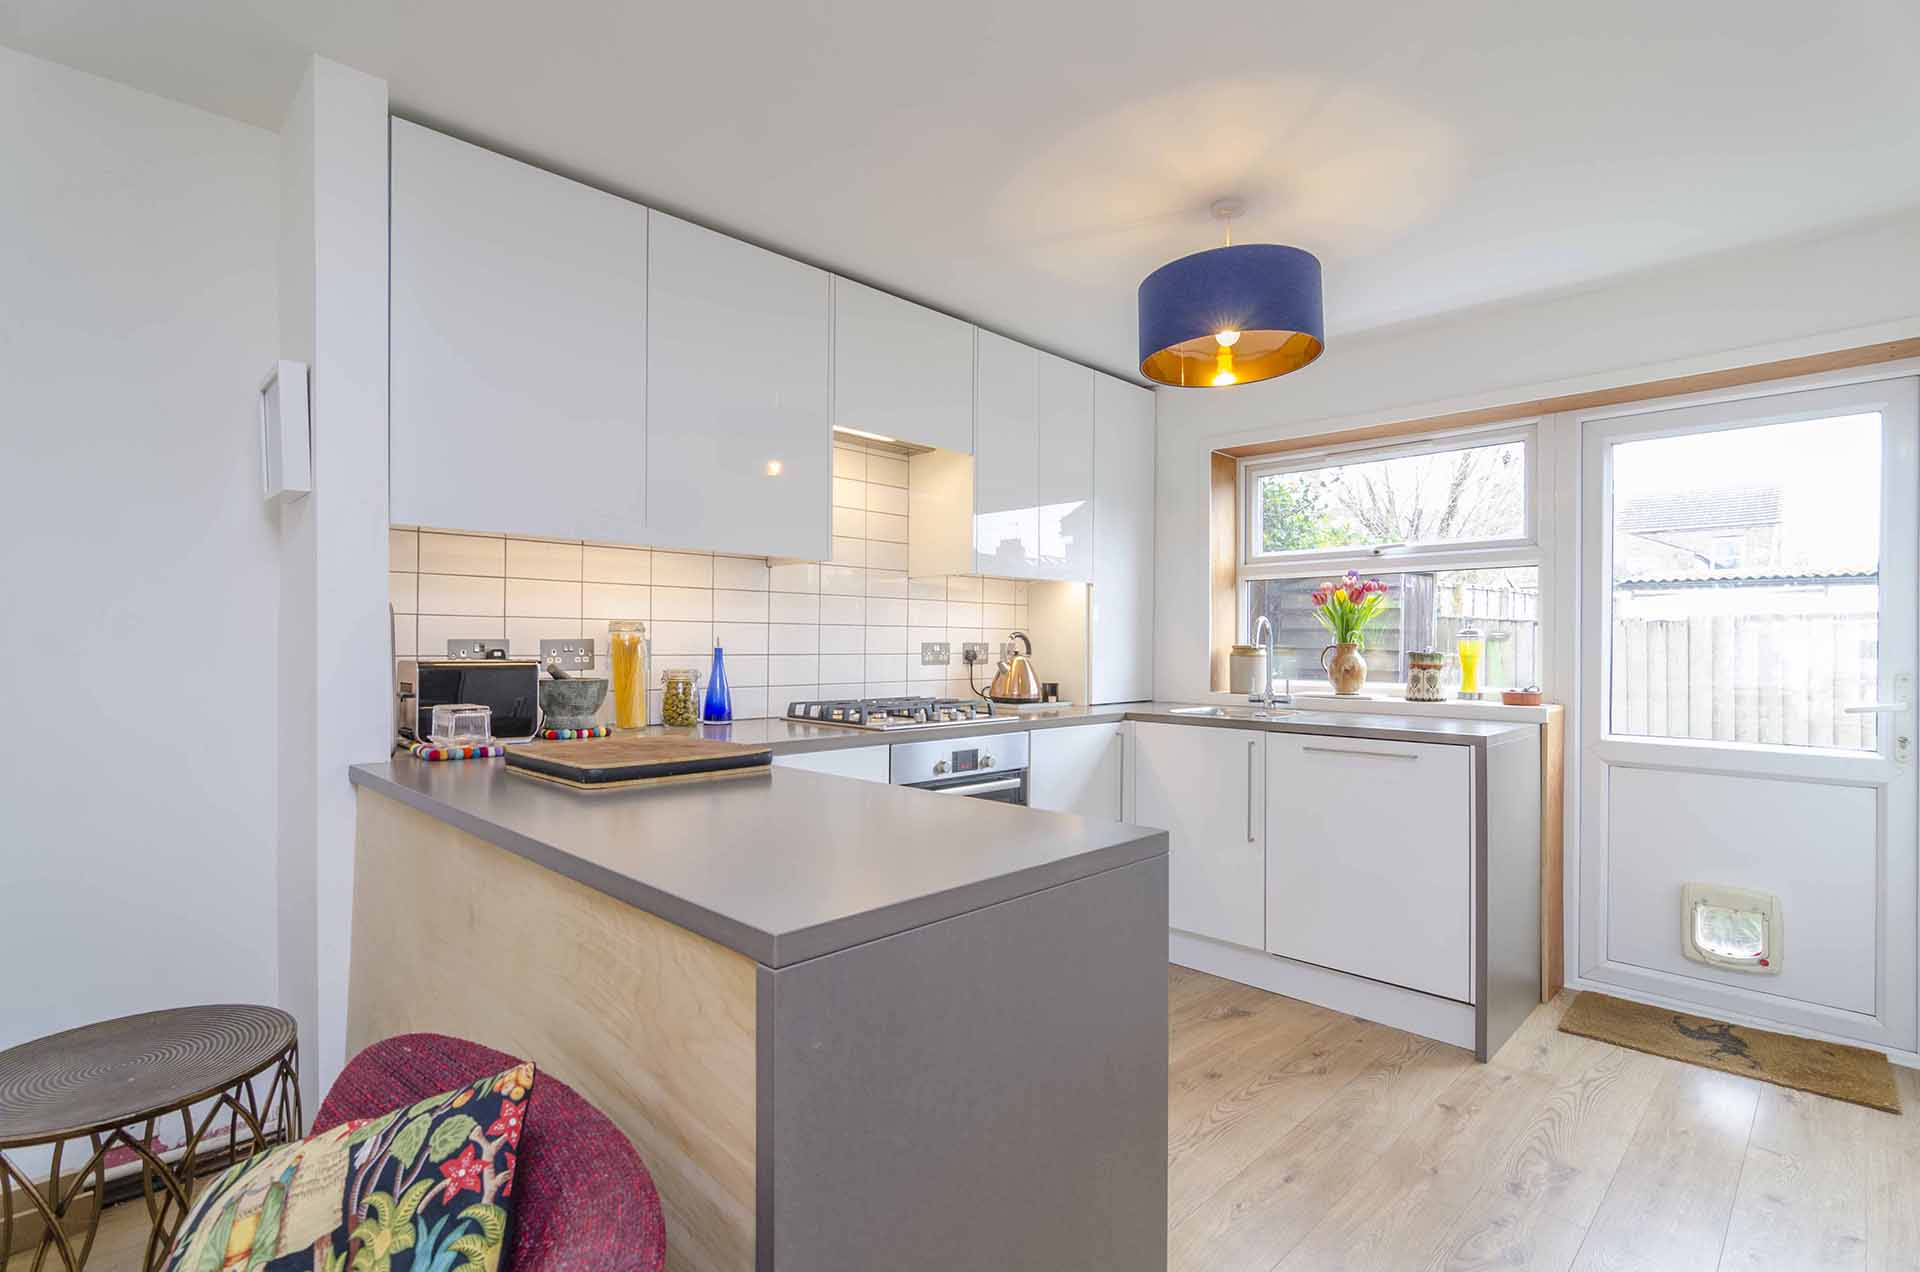 The House Photographer - Property Photography - E17 3